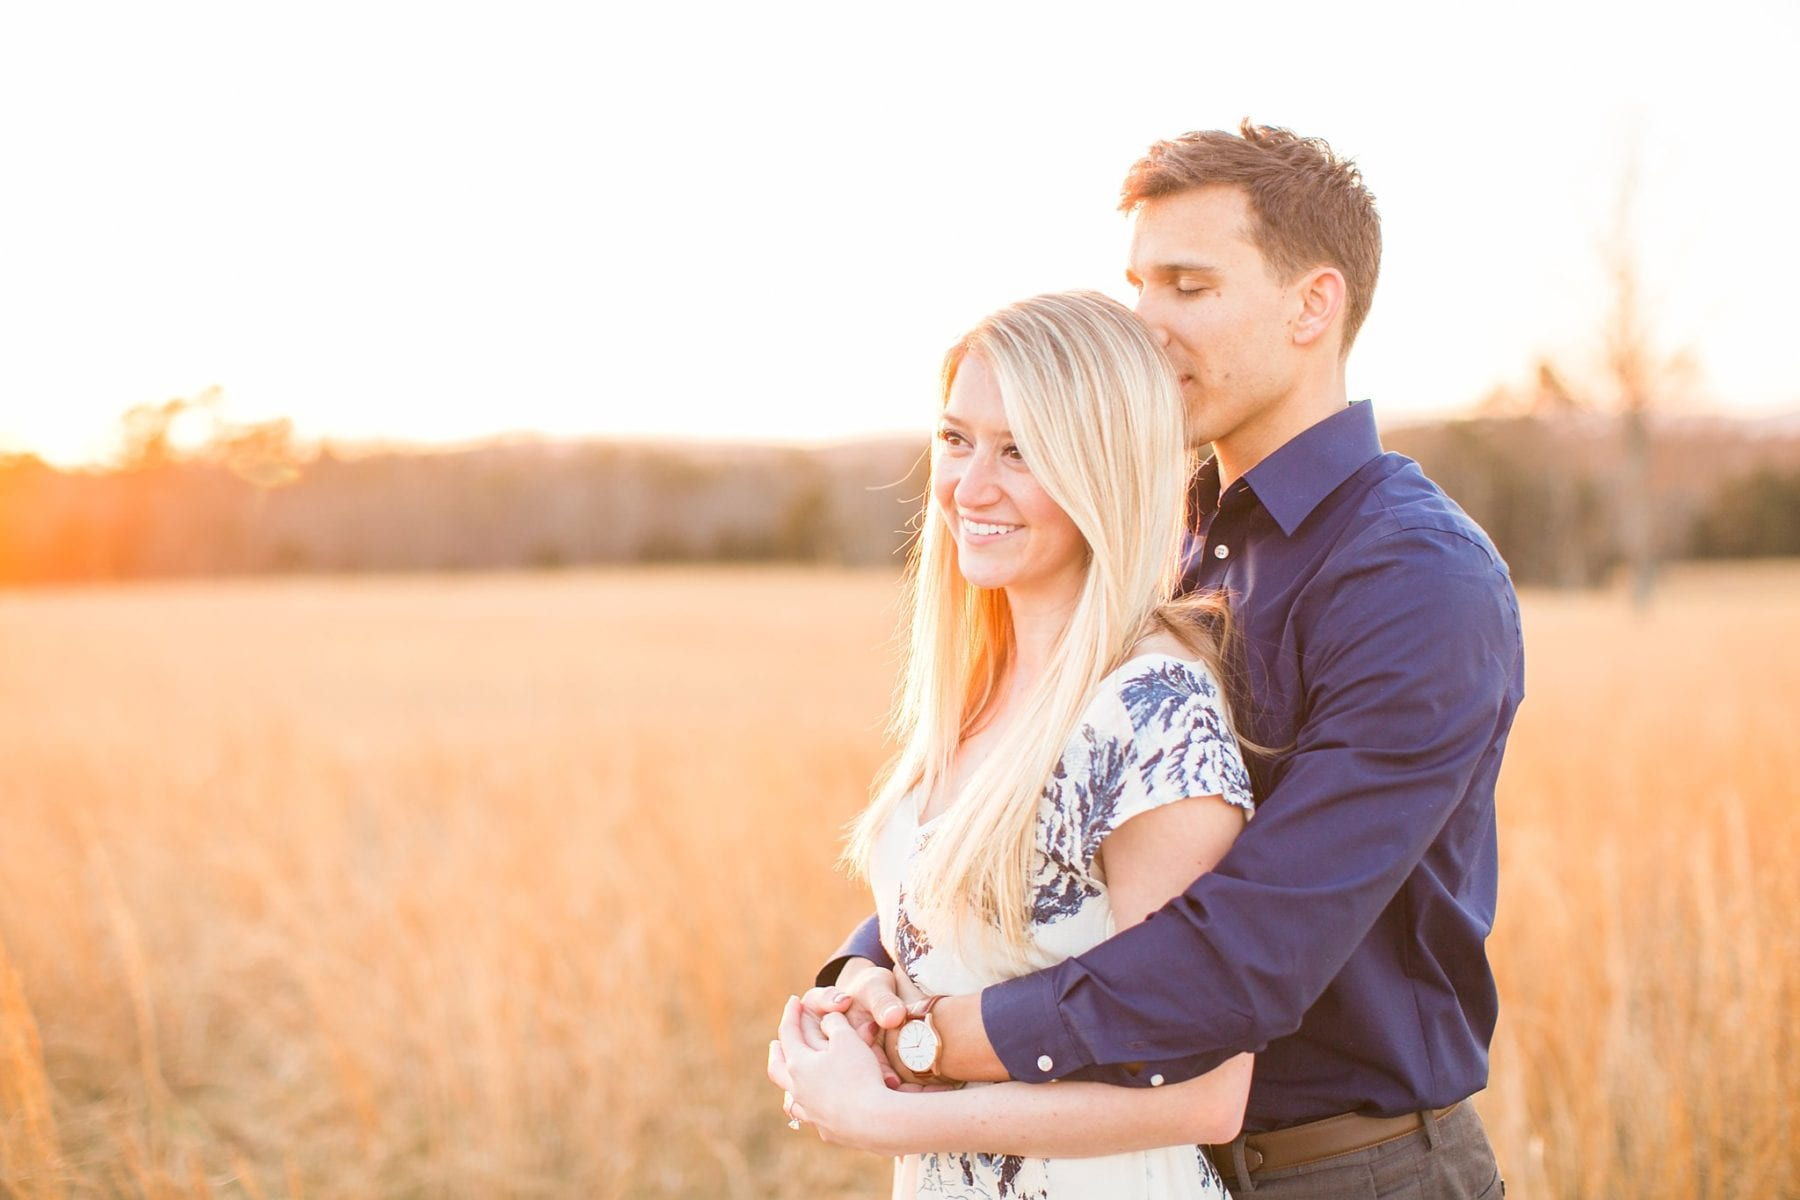 Manassas Battlefield Engagement Session Virginia Wedding Photographer Danielle & Charlie Megan Kelsey Photography-6252.jpg